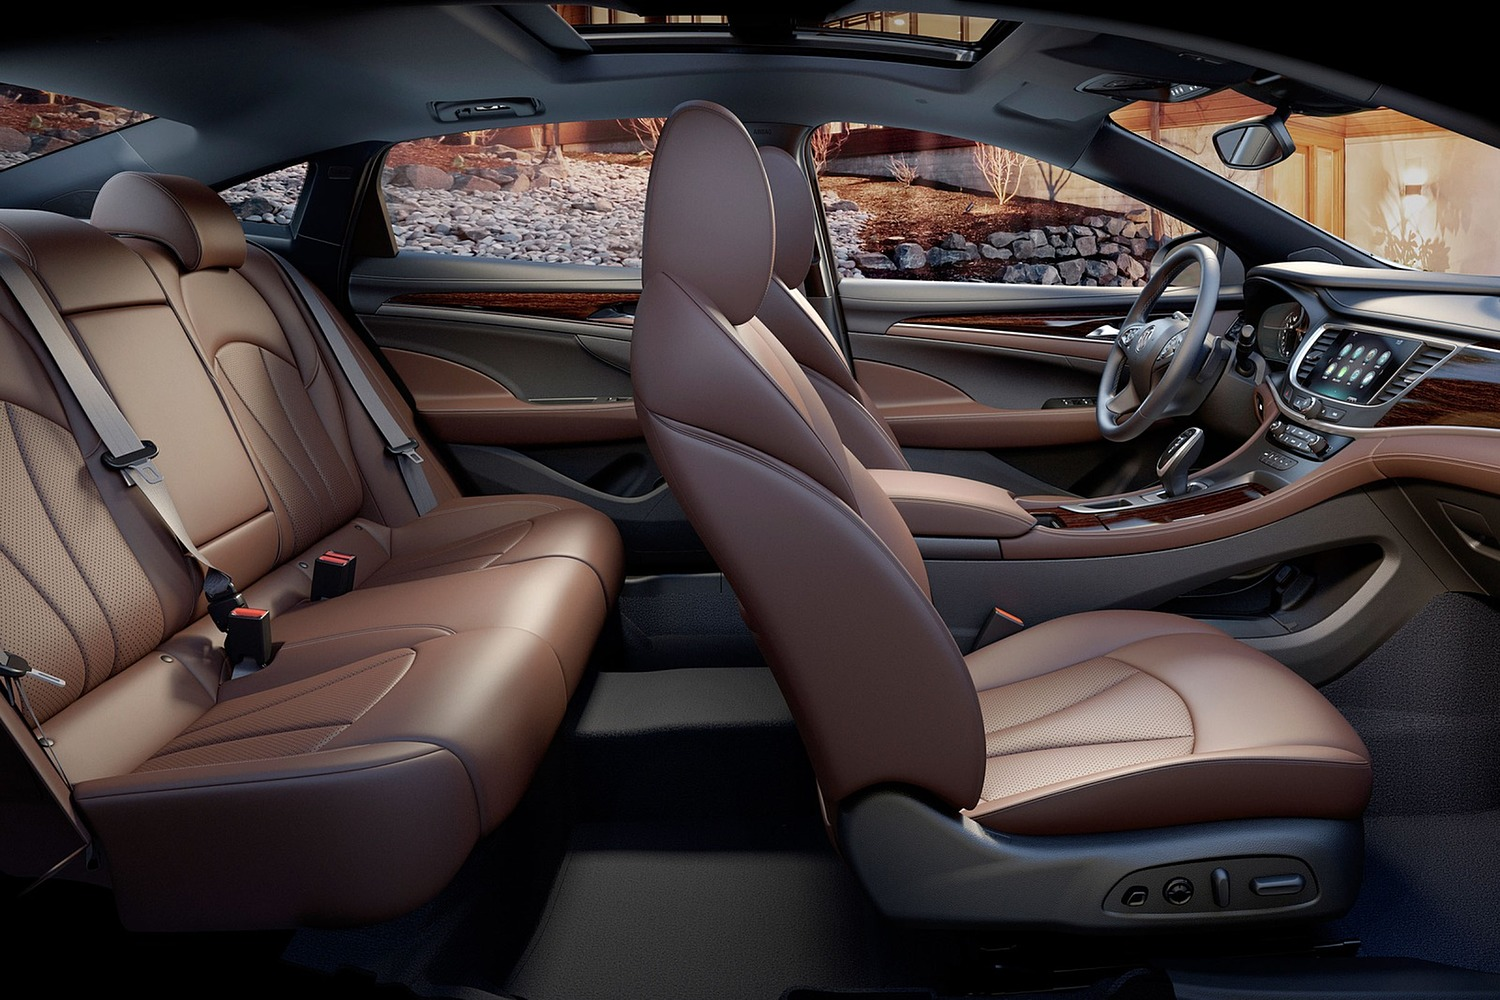 Buick LaCrosse Premium Sedan Interior (2017 model year shown)